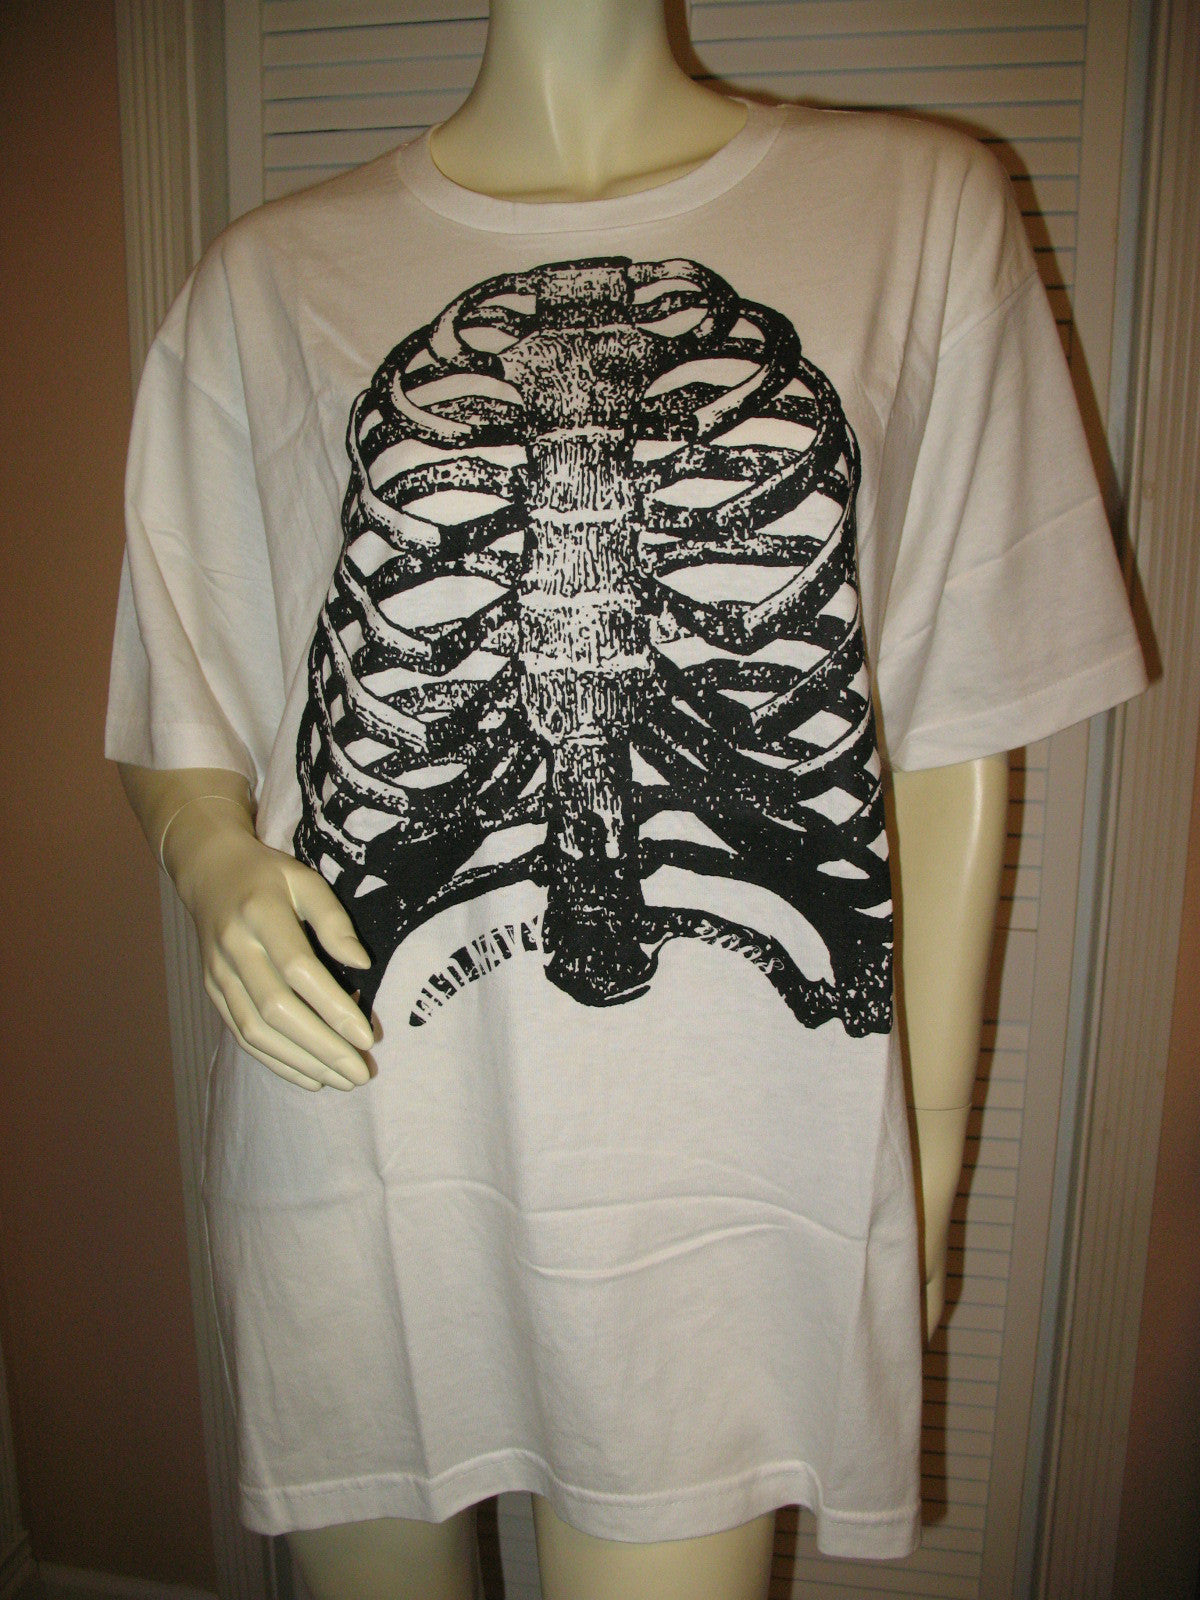 Black t shirt xxl - New Old Navy Mens Womens T Shirts White Black Skeleton Bones Halloween Prints Short Sleeve T Shirt Xxl